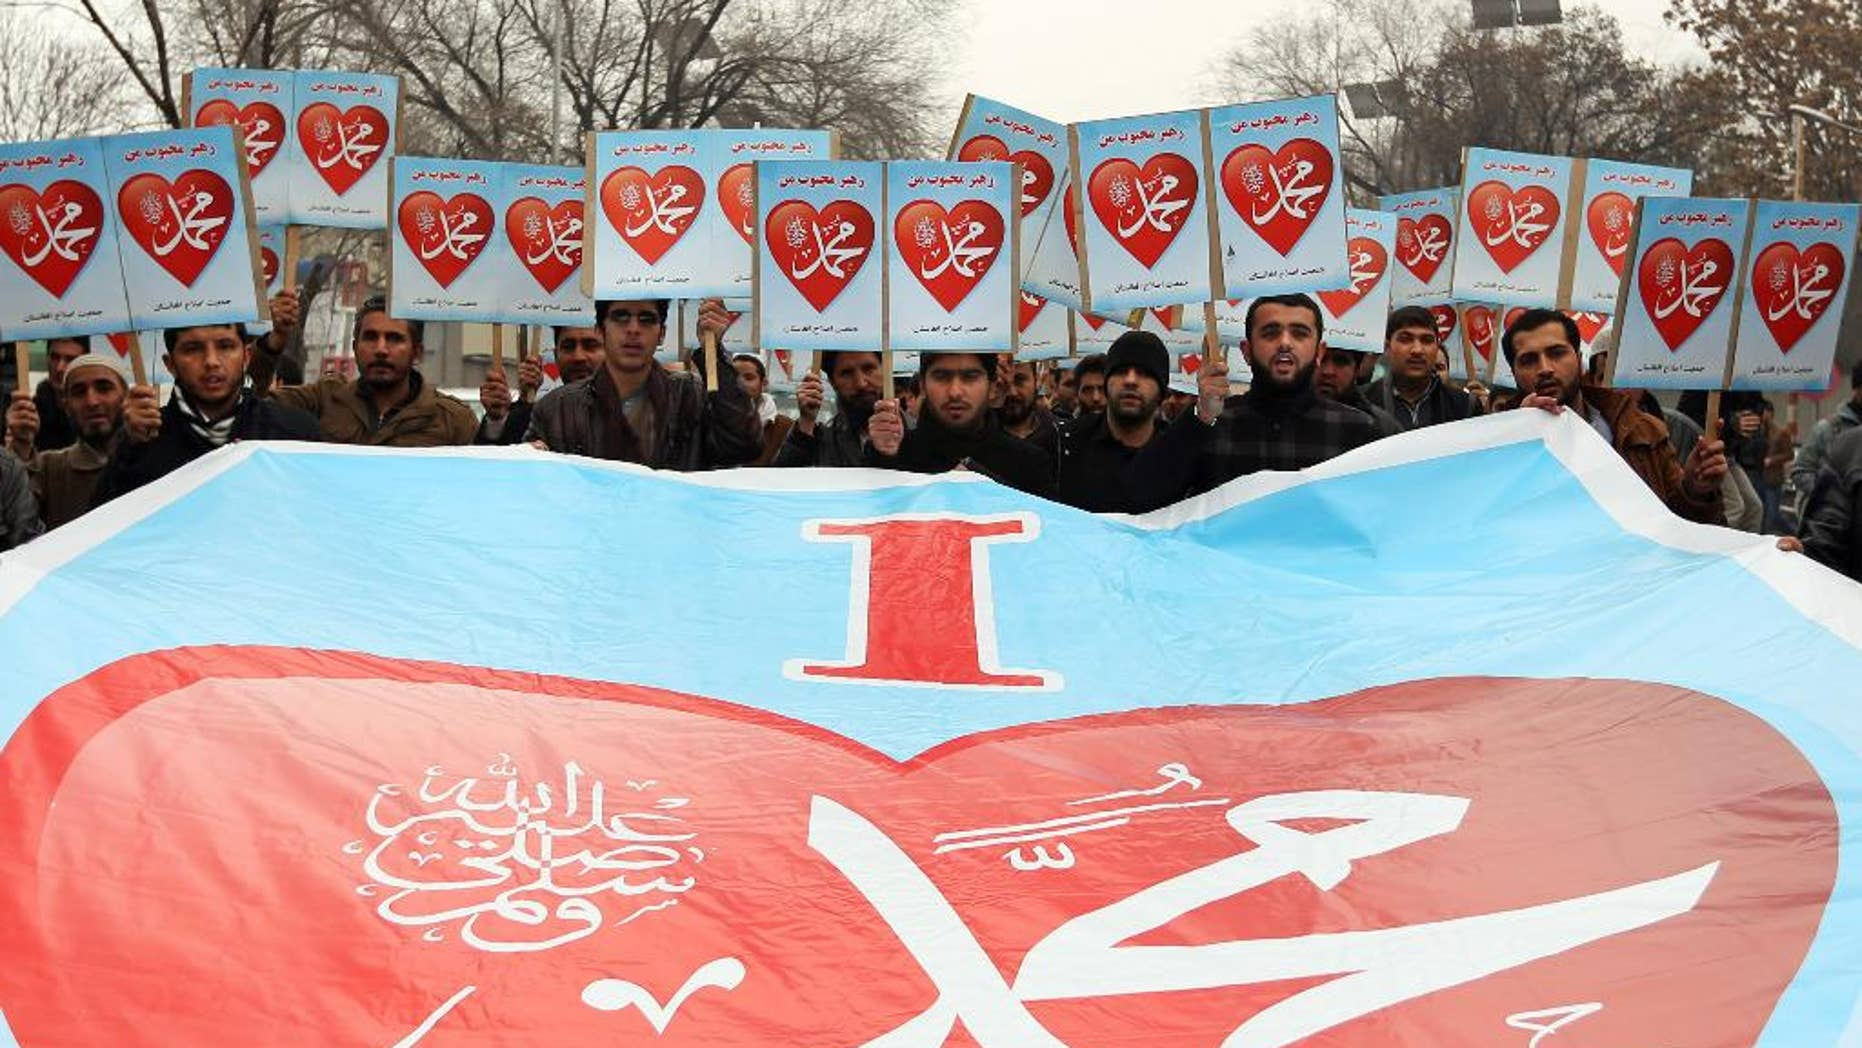 """Afghans hold posters that read, """"I love Muhammad,"""" during a protest against caricatures published in French magazine Charlie Hebdo outside the French Embassy, in Kabul, Afghanistan, Thursday, Jan. 22, 2015. Around 100 people have demonstrated in the Afghan capital against the publishers of the French satirical magazine Charlie Hebdo, accusing them of blasphemy. (AP Photo/Rahmat Gul)"""